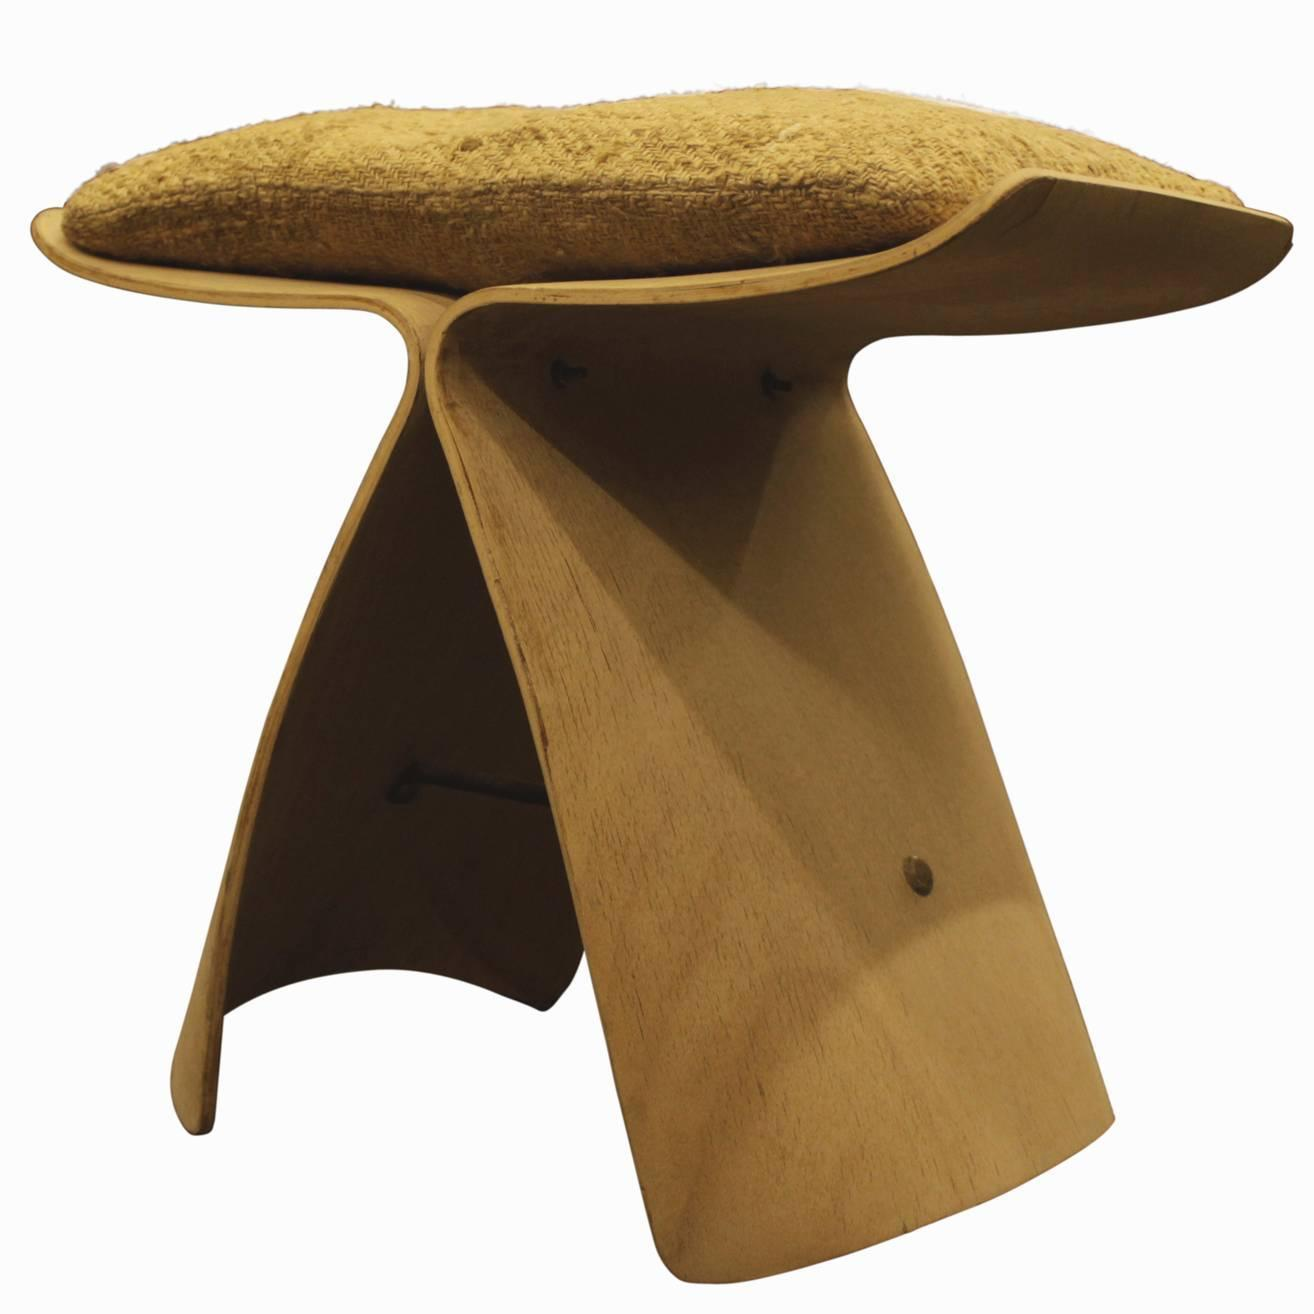 Butterfly chair sori yanagi - Butterfly Chair Sori Yanagi 29